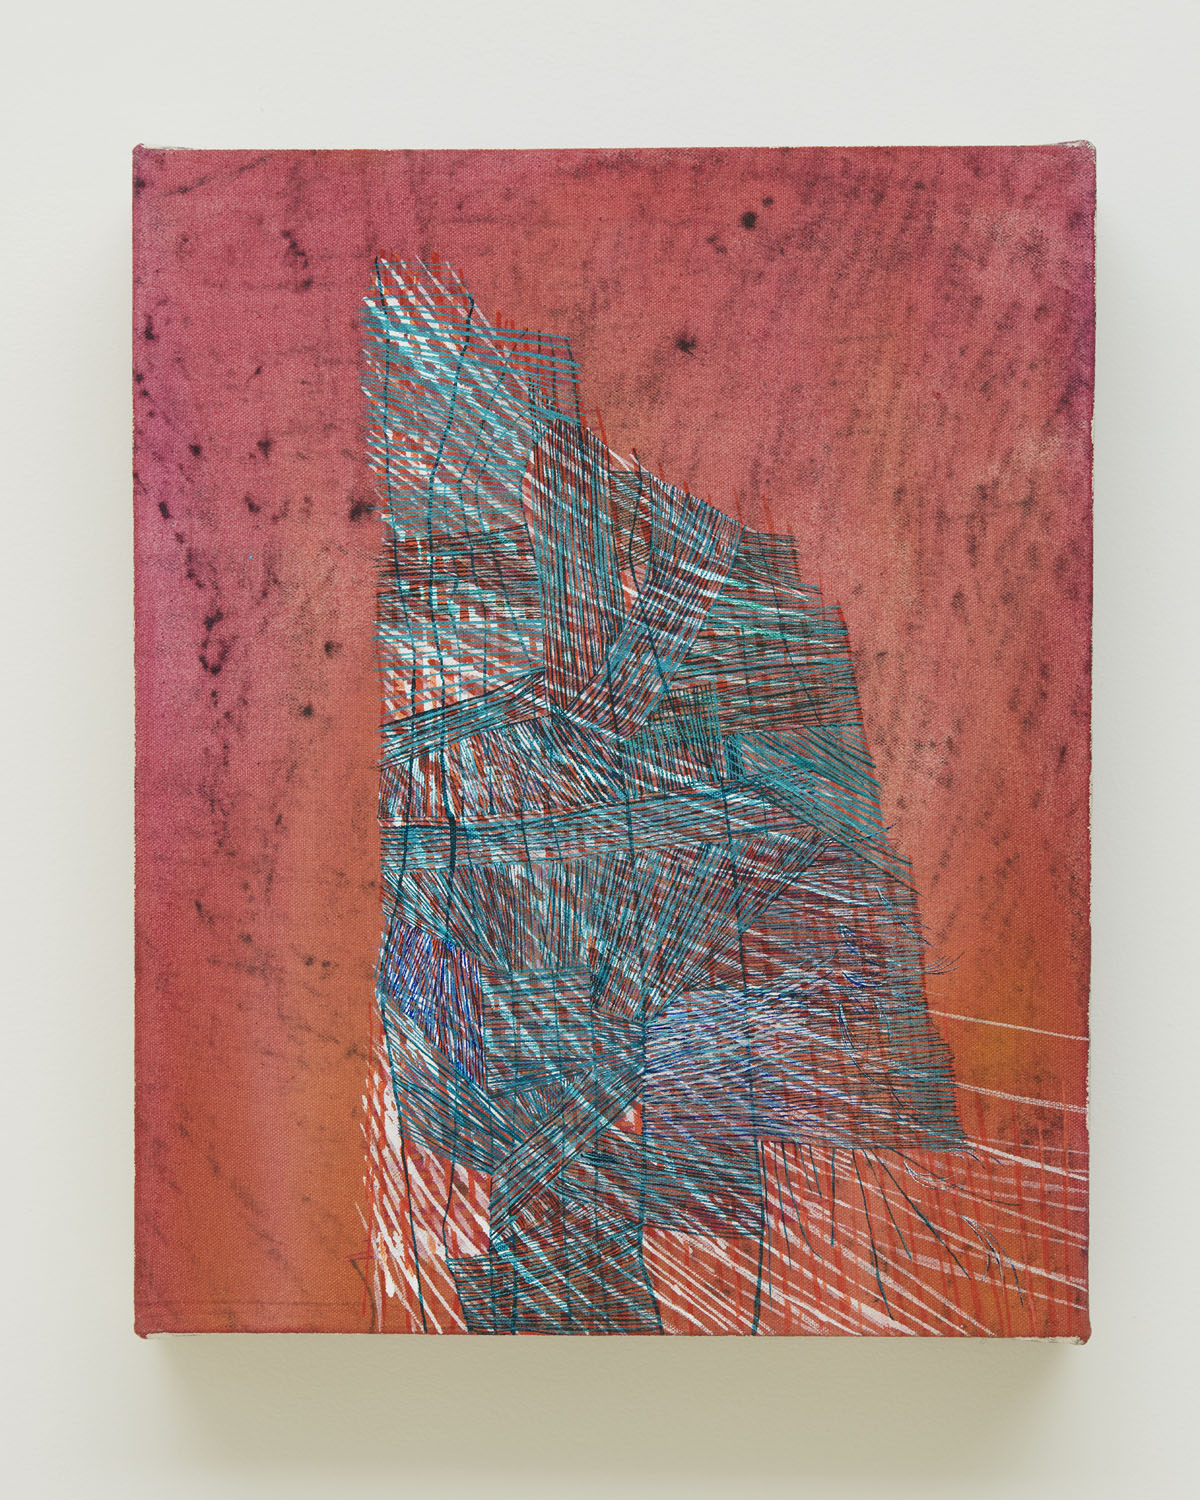 Only After, 2016, by Alyse Rosner, acrylic and graphite painting on canvas. Coral background with central turquoise hatched linear abstract form.